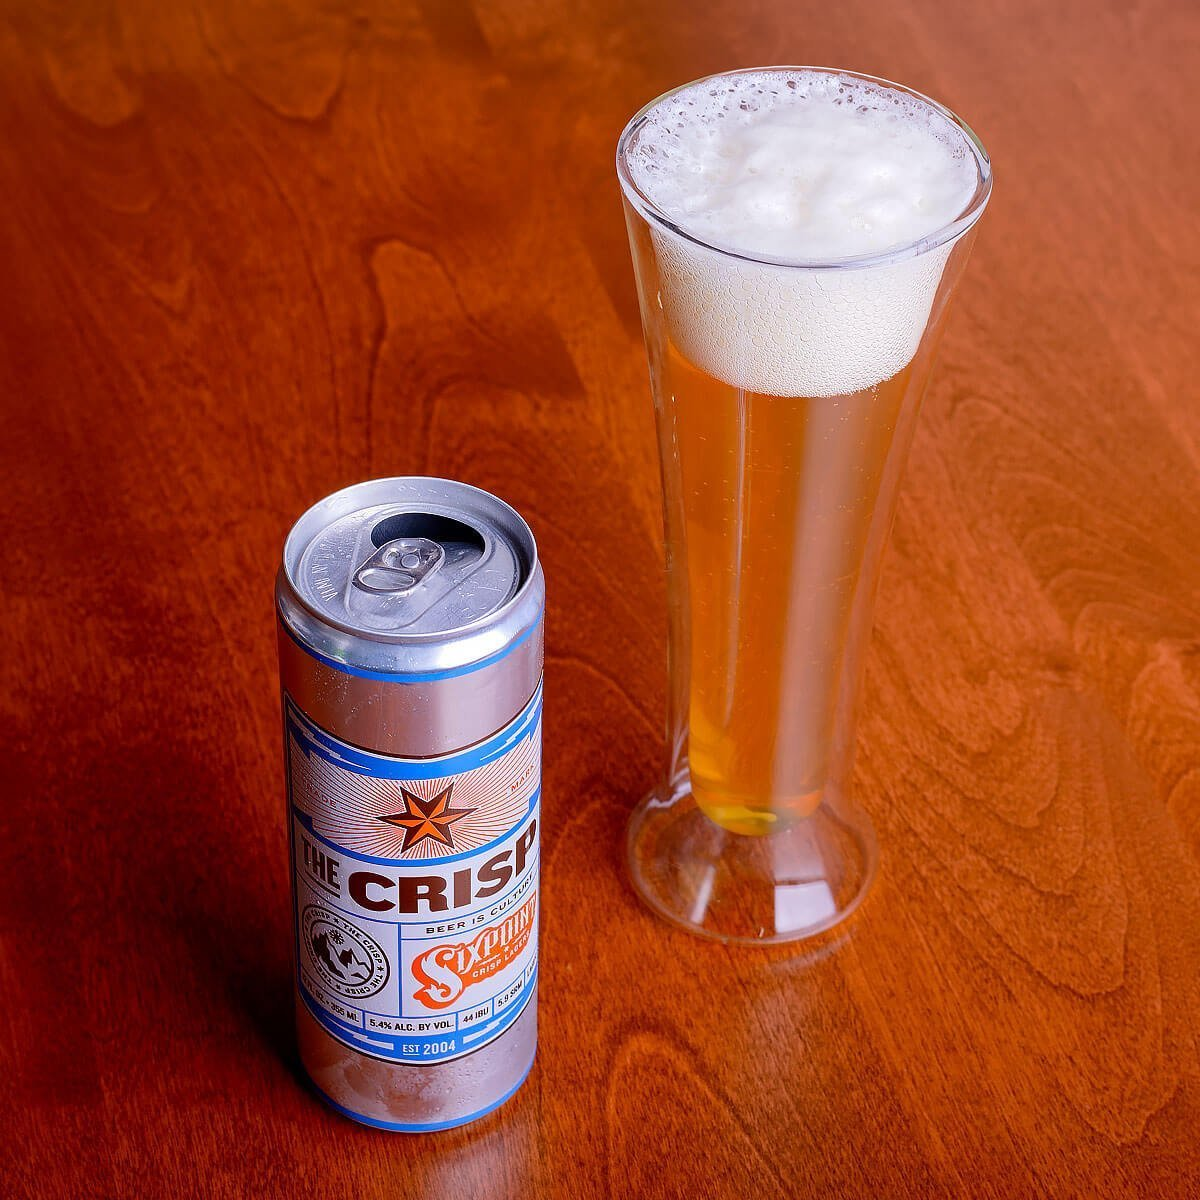 The Crisp is a German-style Pilsner by Sixpoint Brewery that's light and refreshing with peppery hops, lemon citrus, cracker, and honey.